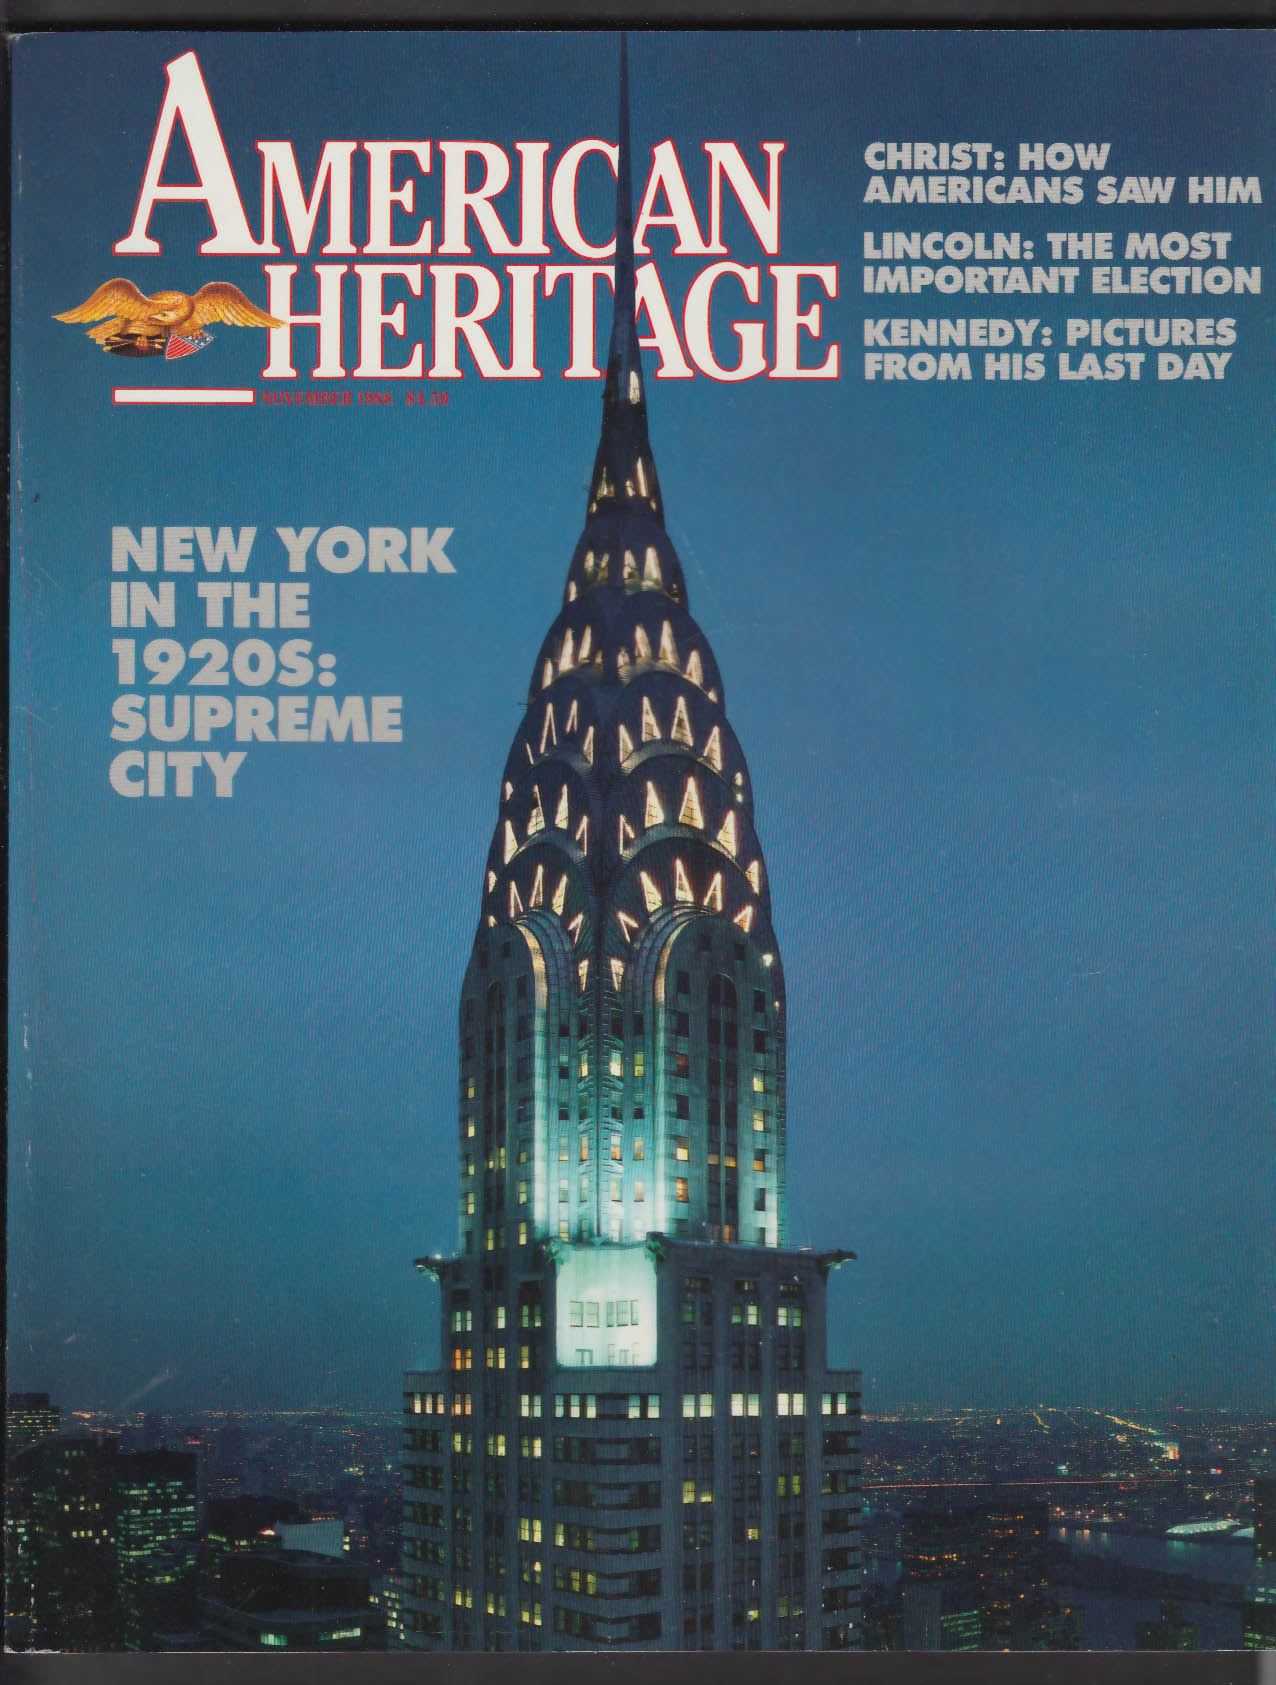 AMERICAN HERITAGE New York City Christ Lincoln Kennedy + 11 1988